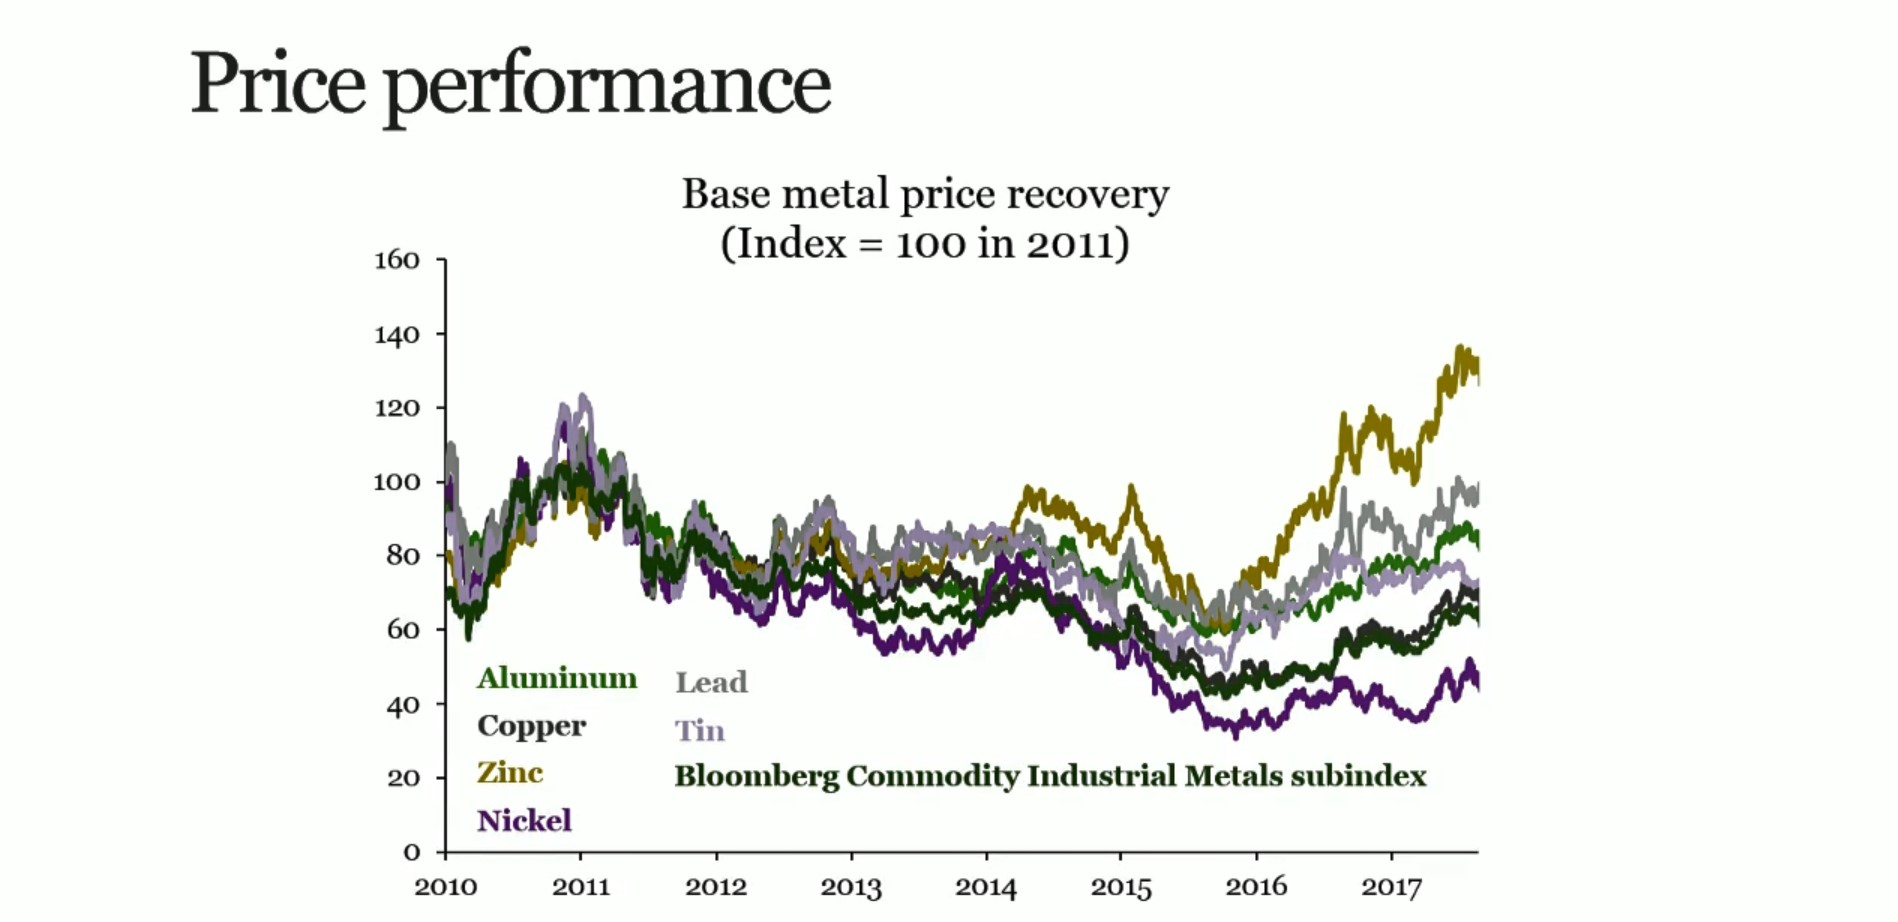 Base metal price performance